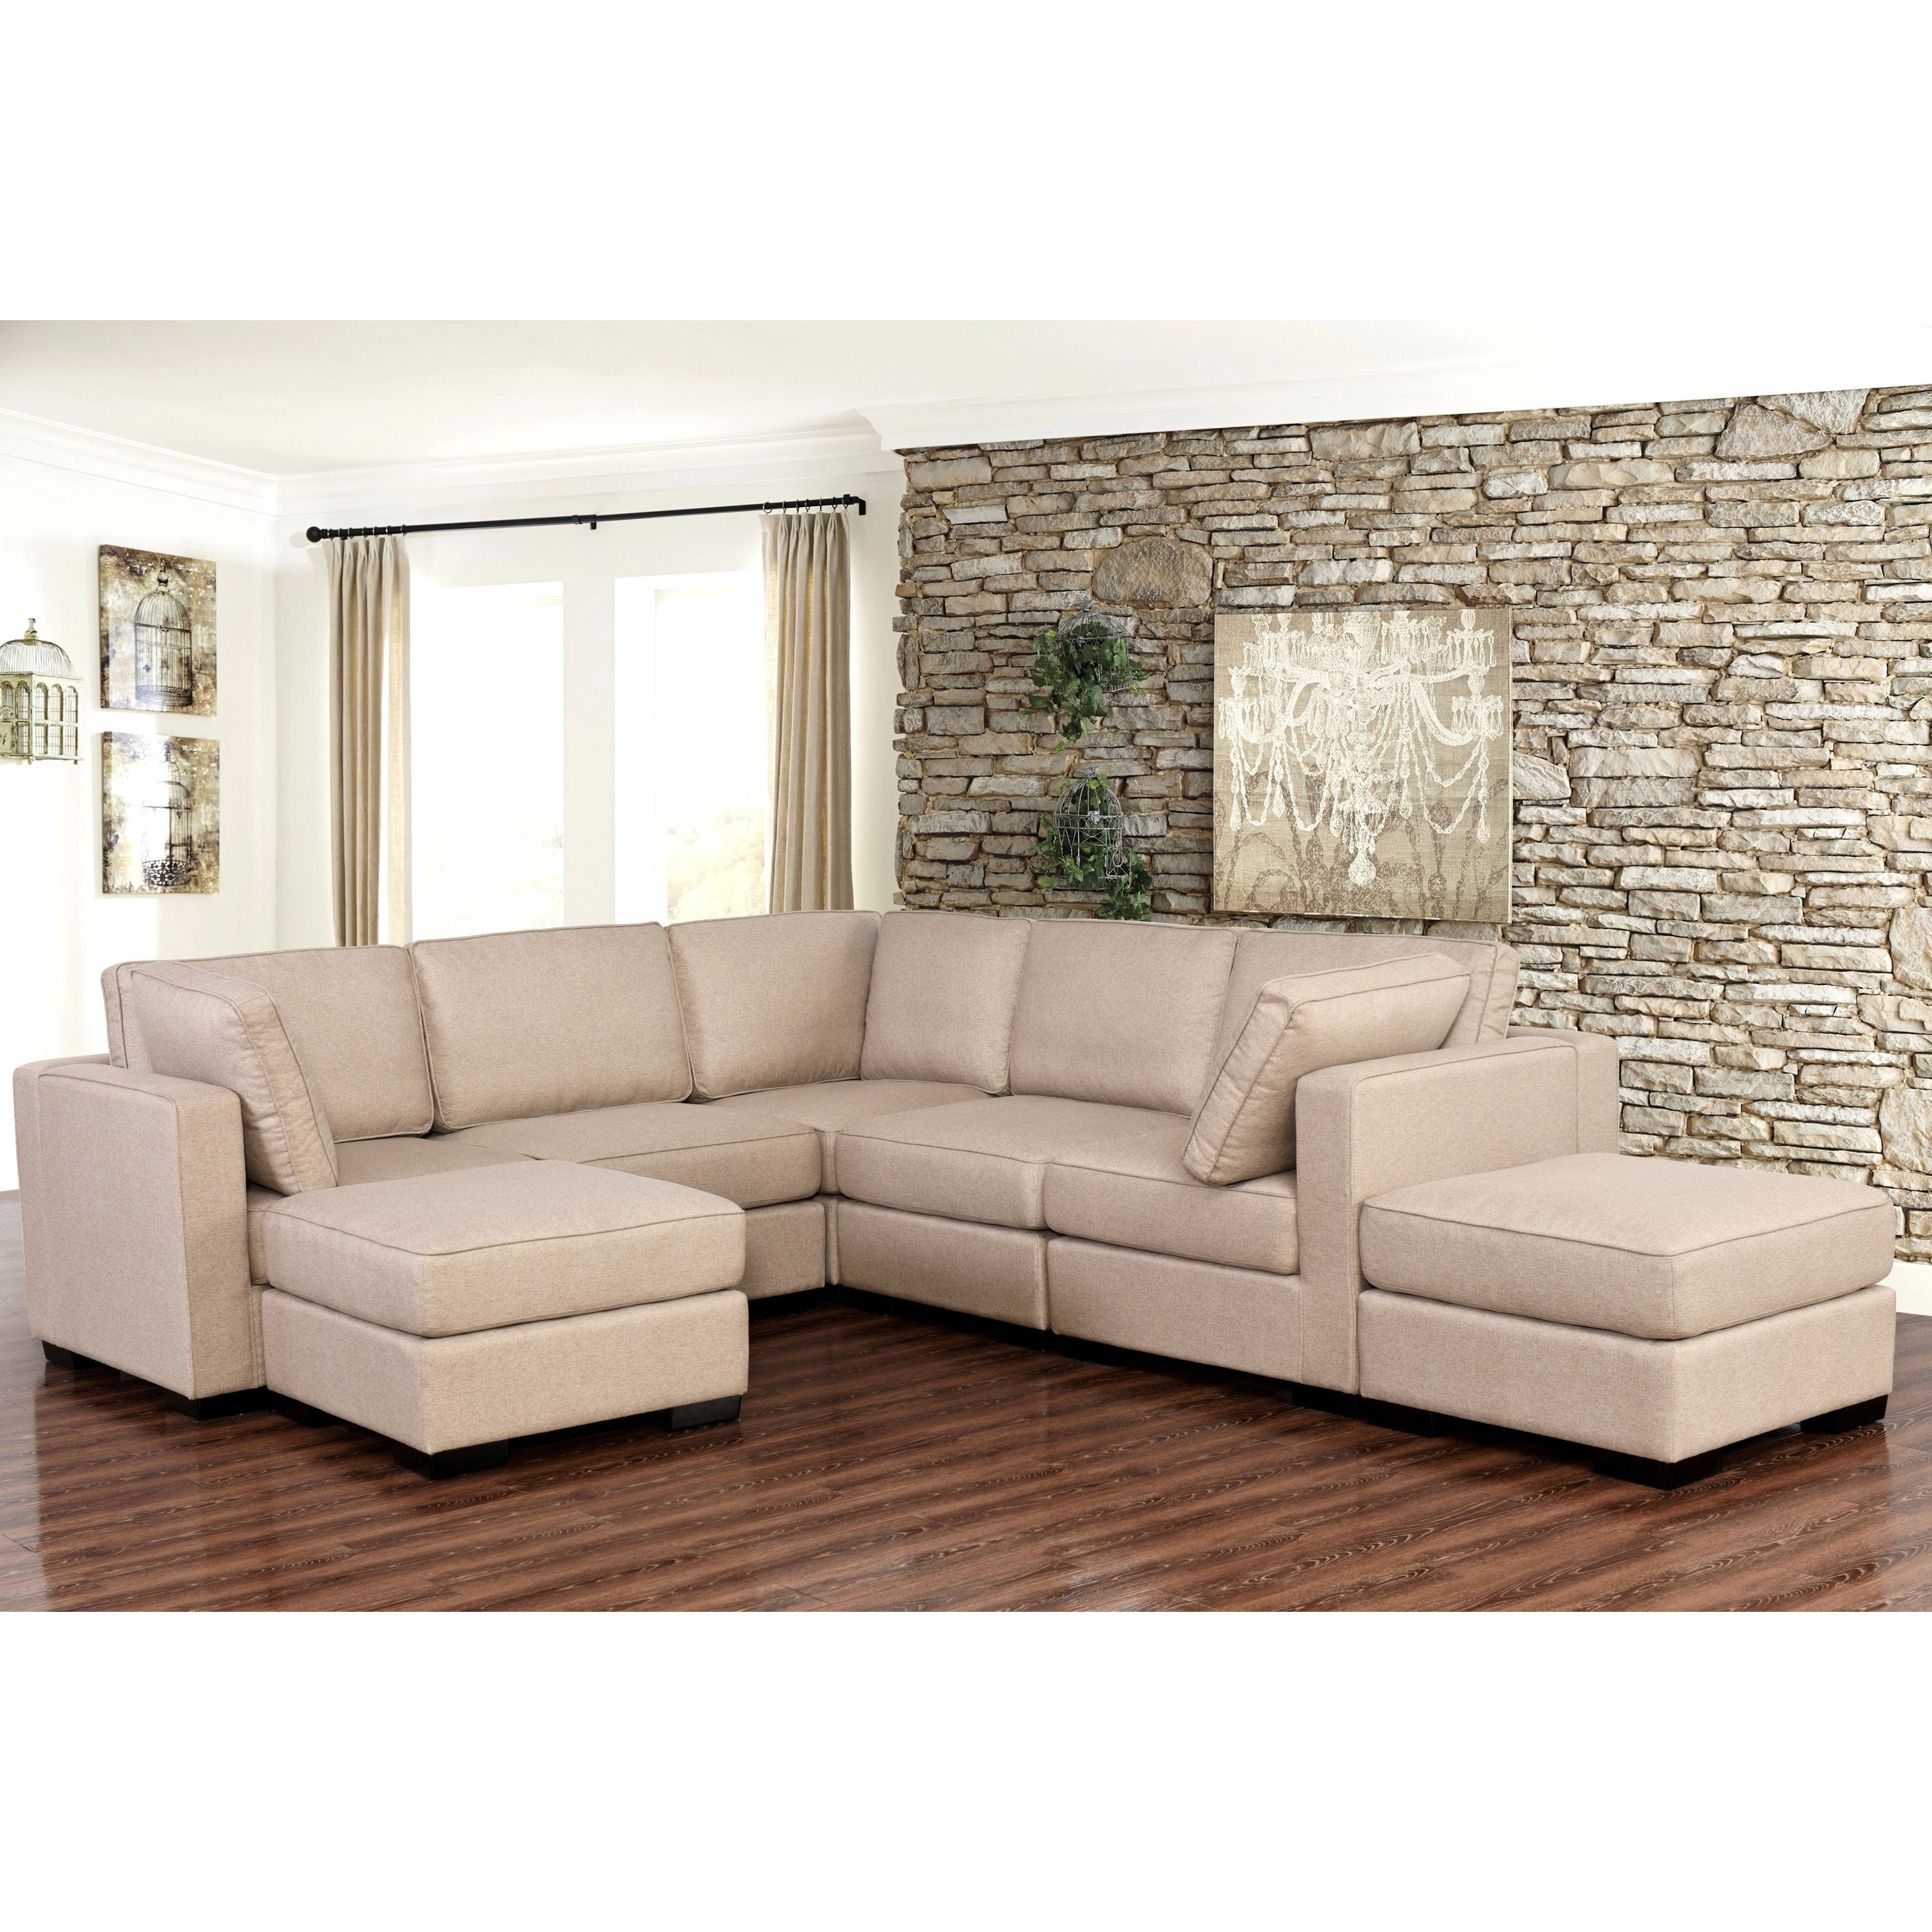 Well Known Harper Down 3 Piece Sectionals Intended For Shop Abbyson Harper Fabric Modular 7 Piece Sectional – Free Shipping (View 18 of 20)